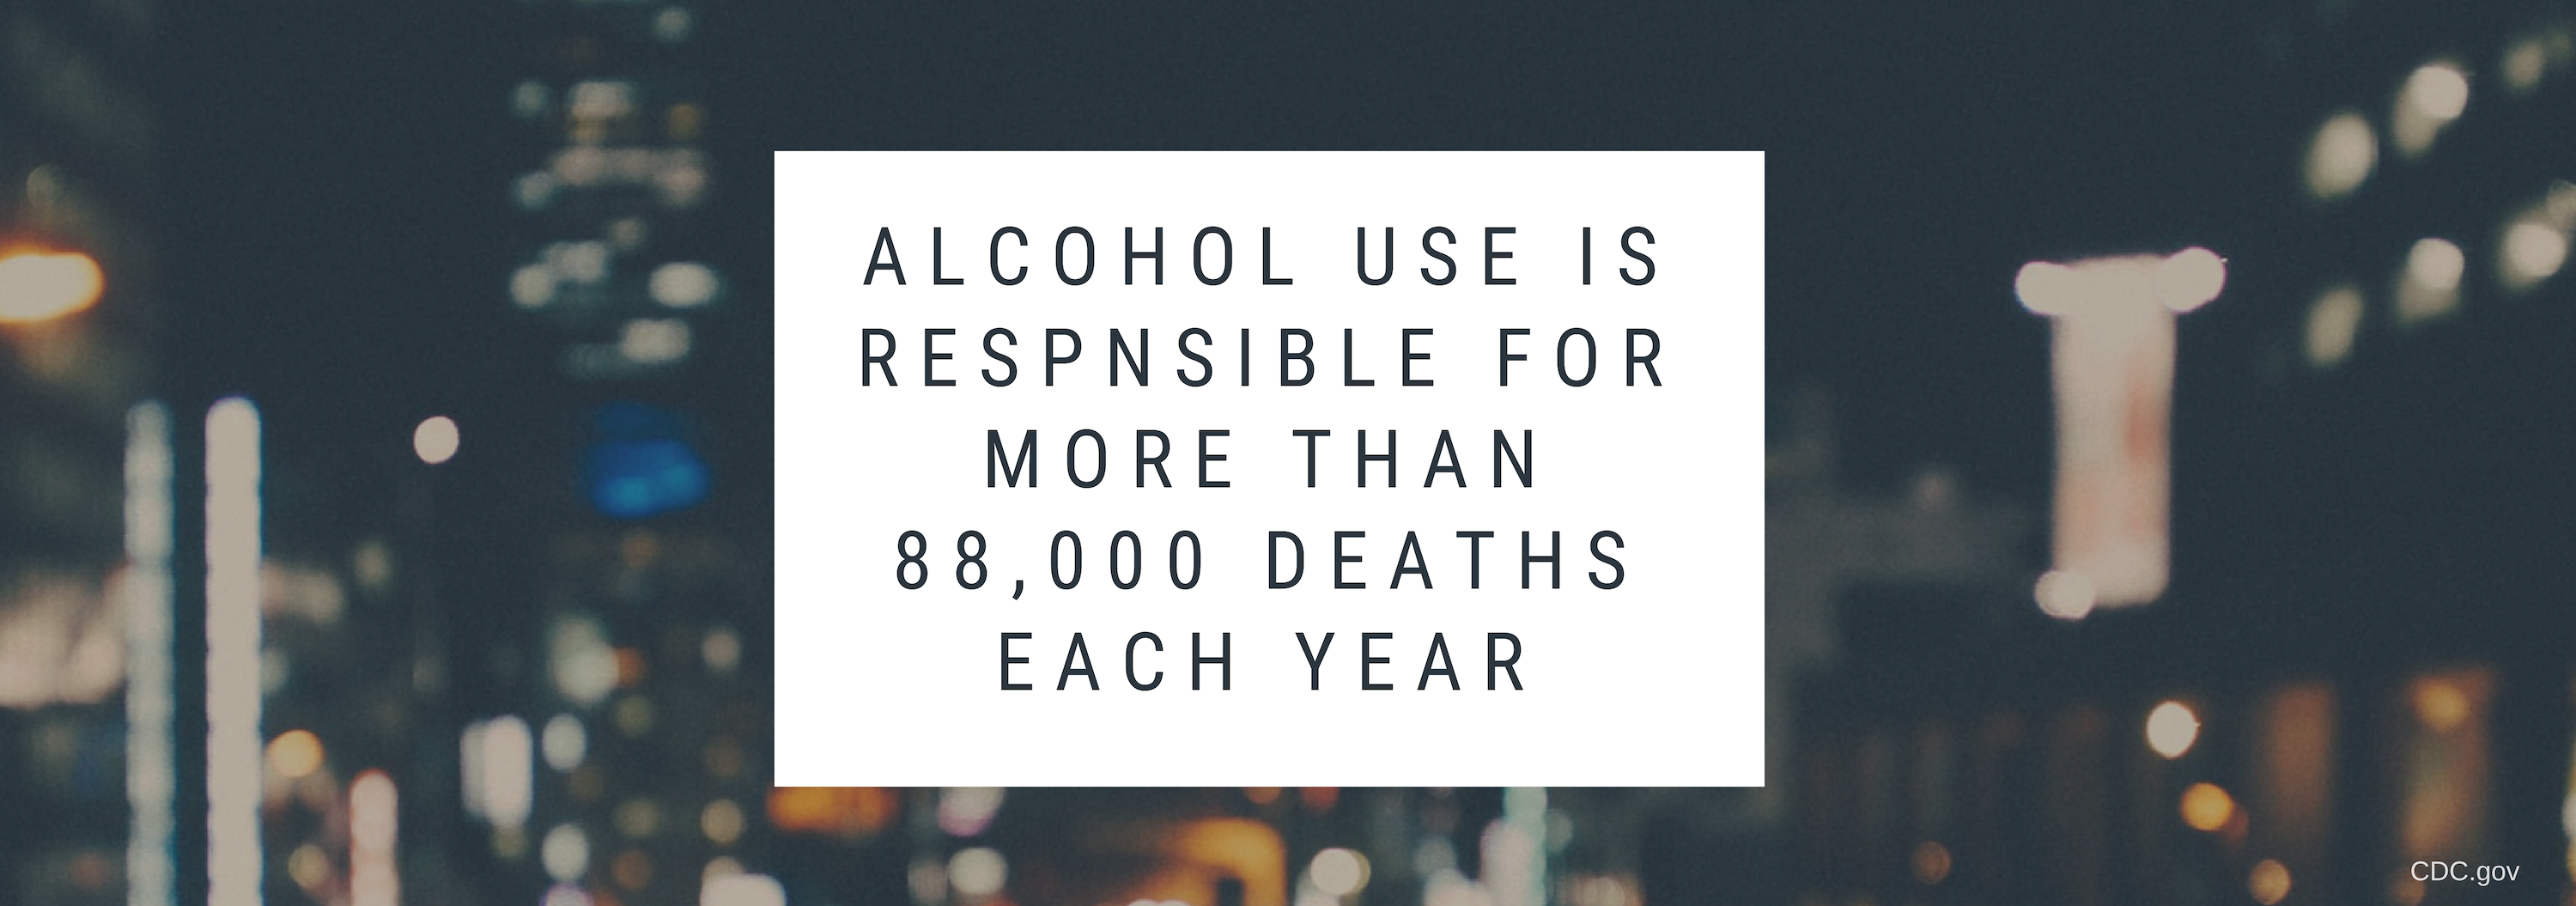 alcoholfacts